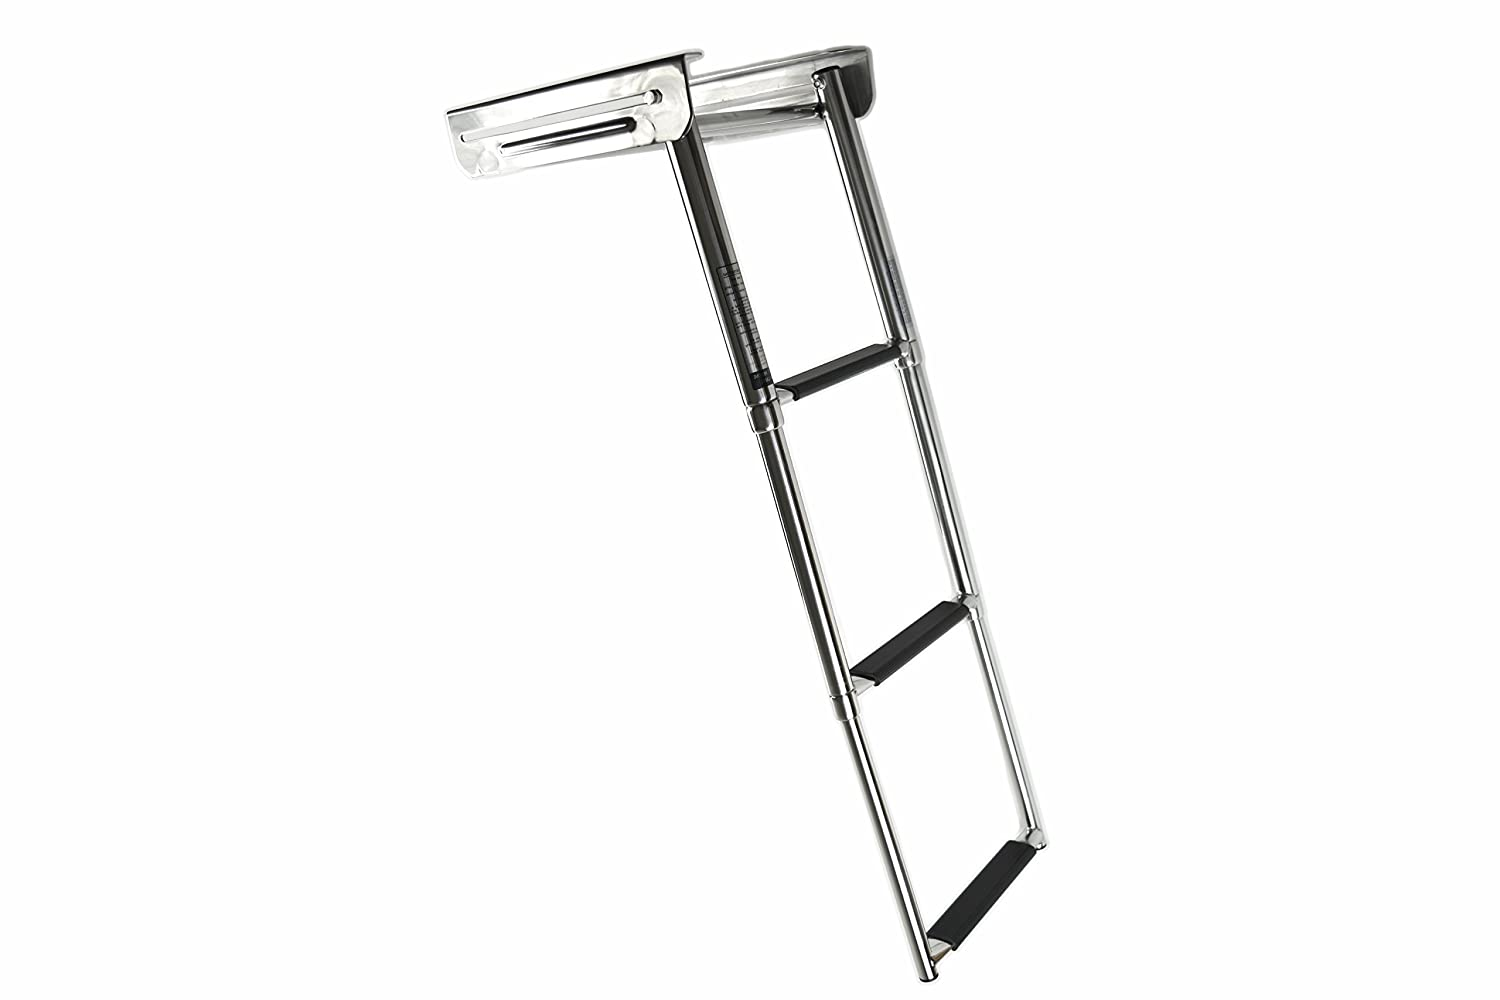 Marine City Stainless Steel 3-Step Under Platform Telescoping Ladder for Boat, Yacht